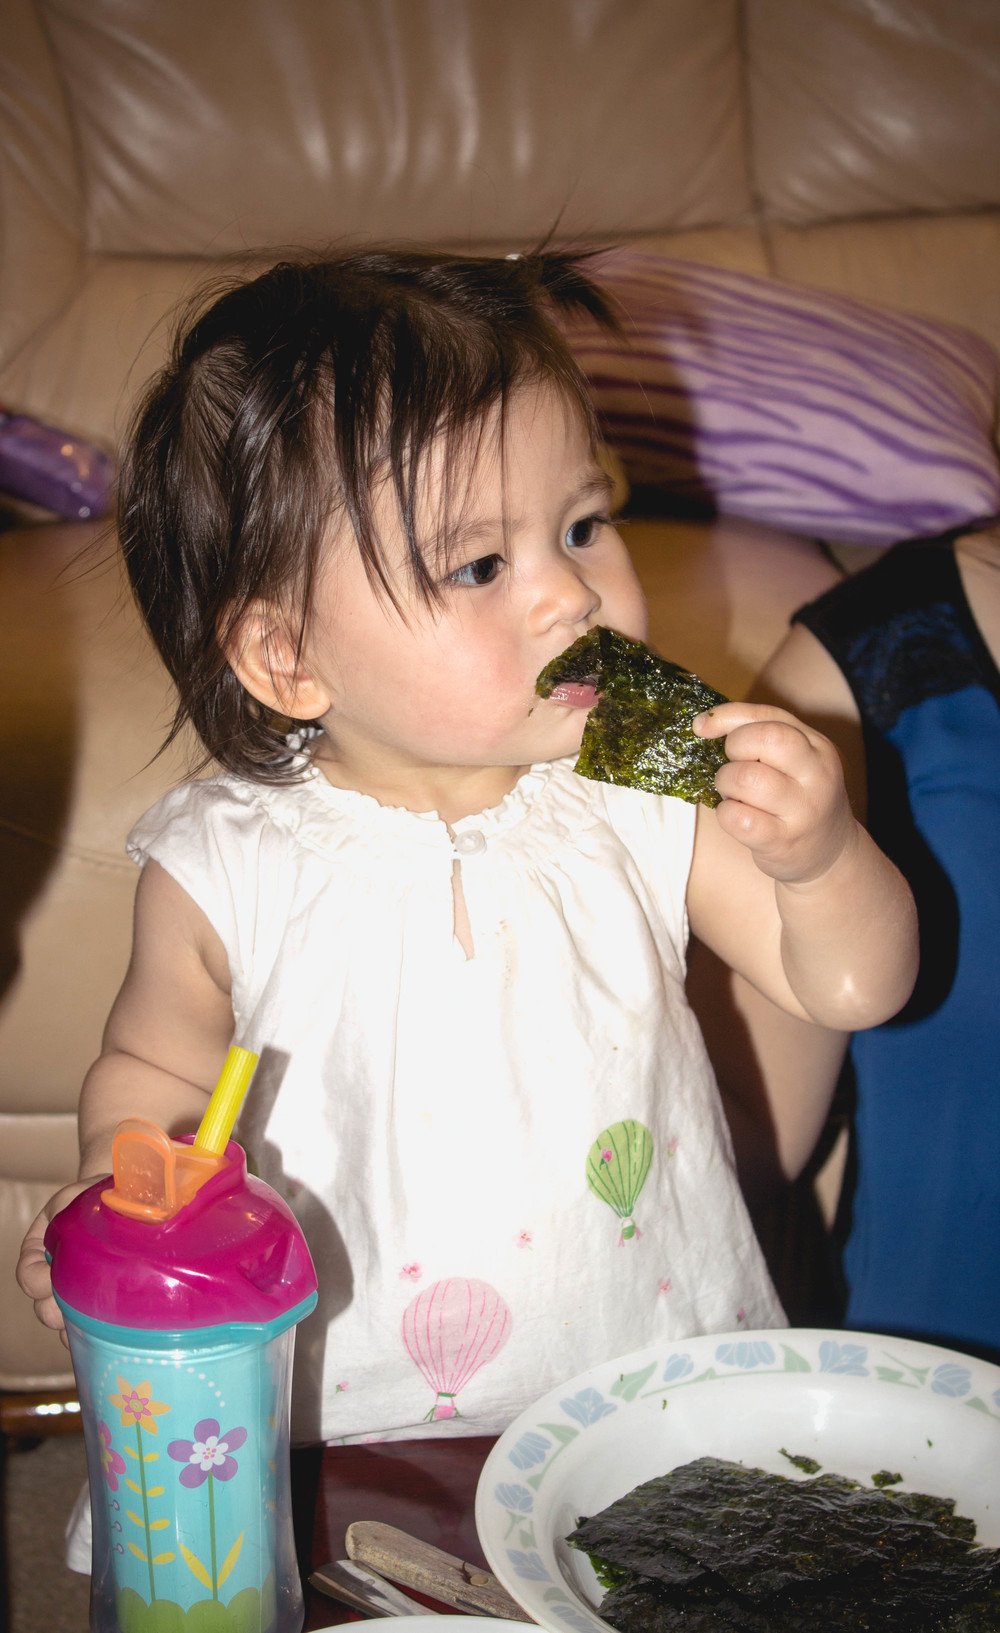 Selah eating kim or nori sheets.jpg